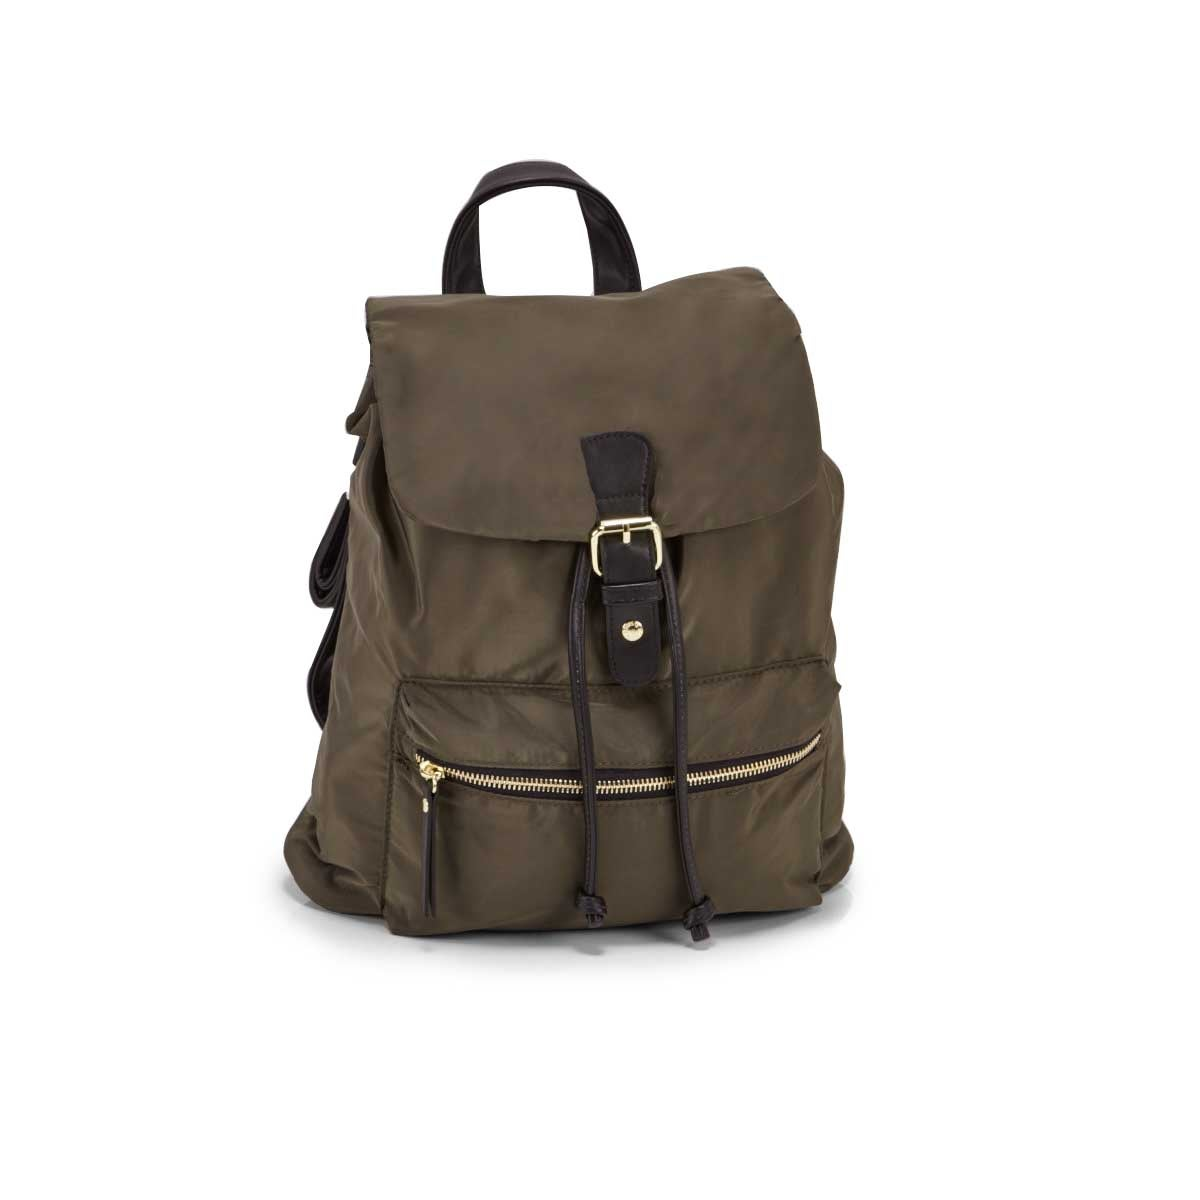 Lds Roots73 khaki mini backpack